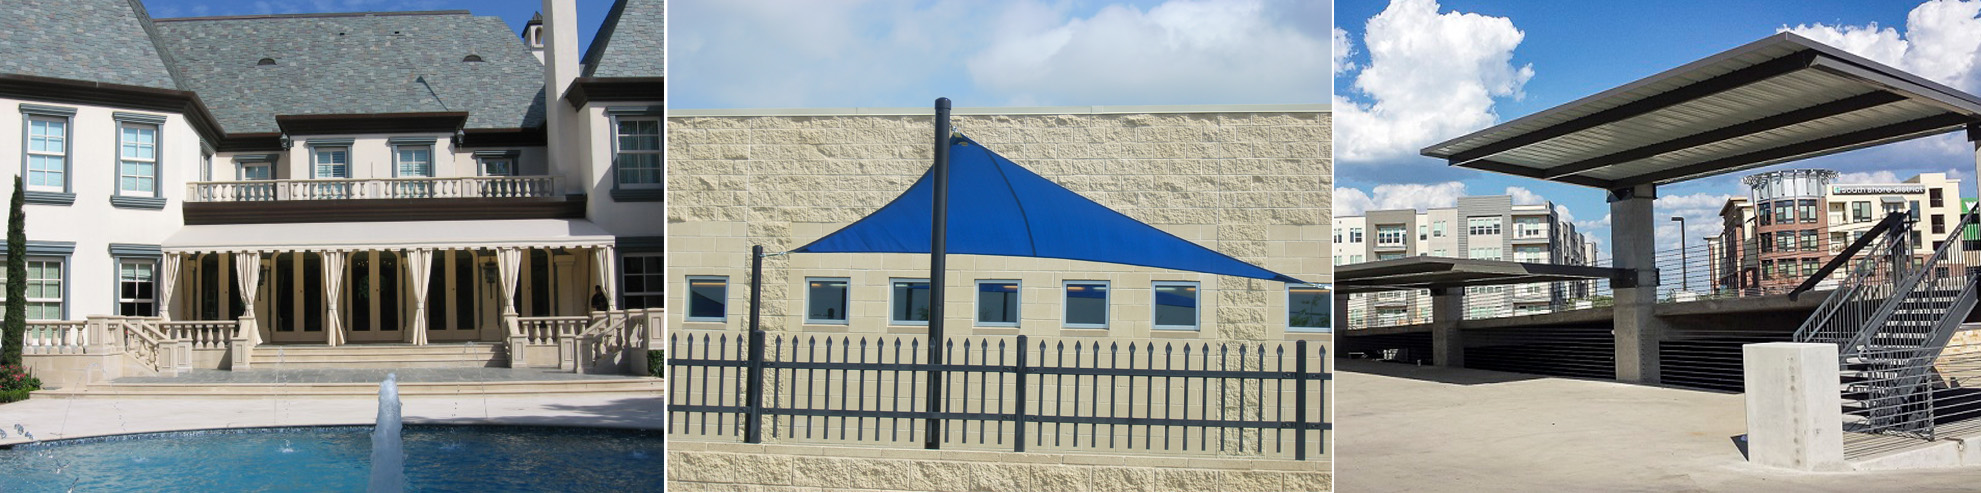 Residential Awnings u0026 Canopies in Denton TX & Denton TX Commercial Metal/Fabric Awning u0026 Canopy Company | USA ...